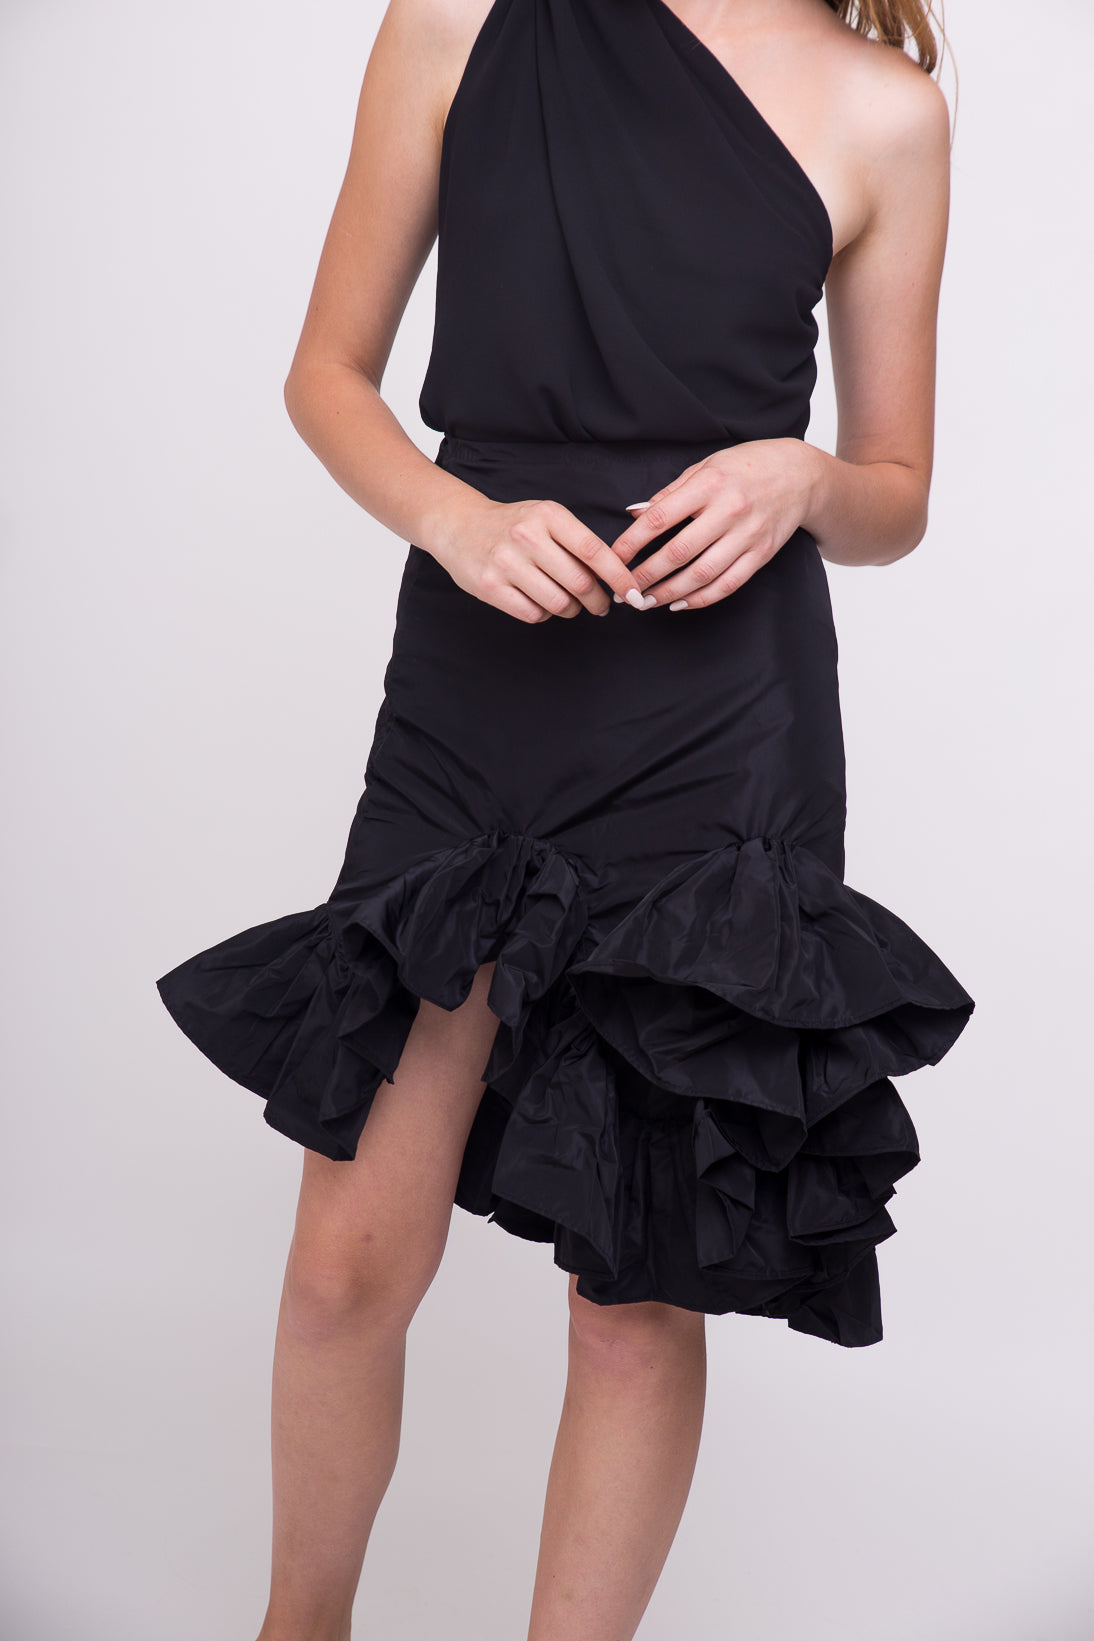 Showstopping black short ruffle skirt.